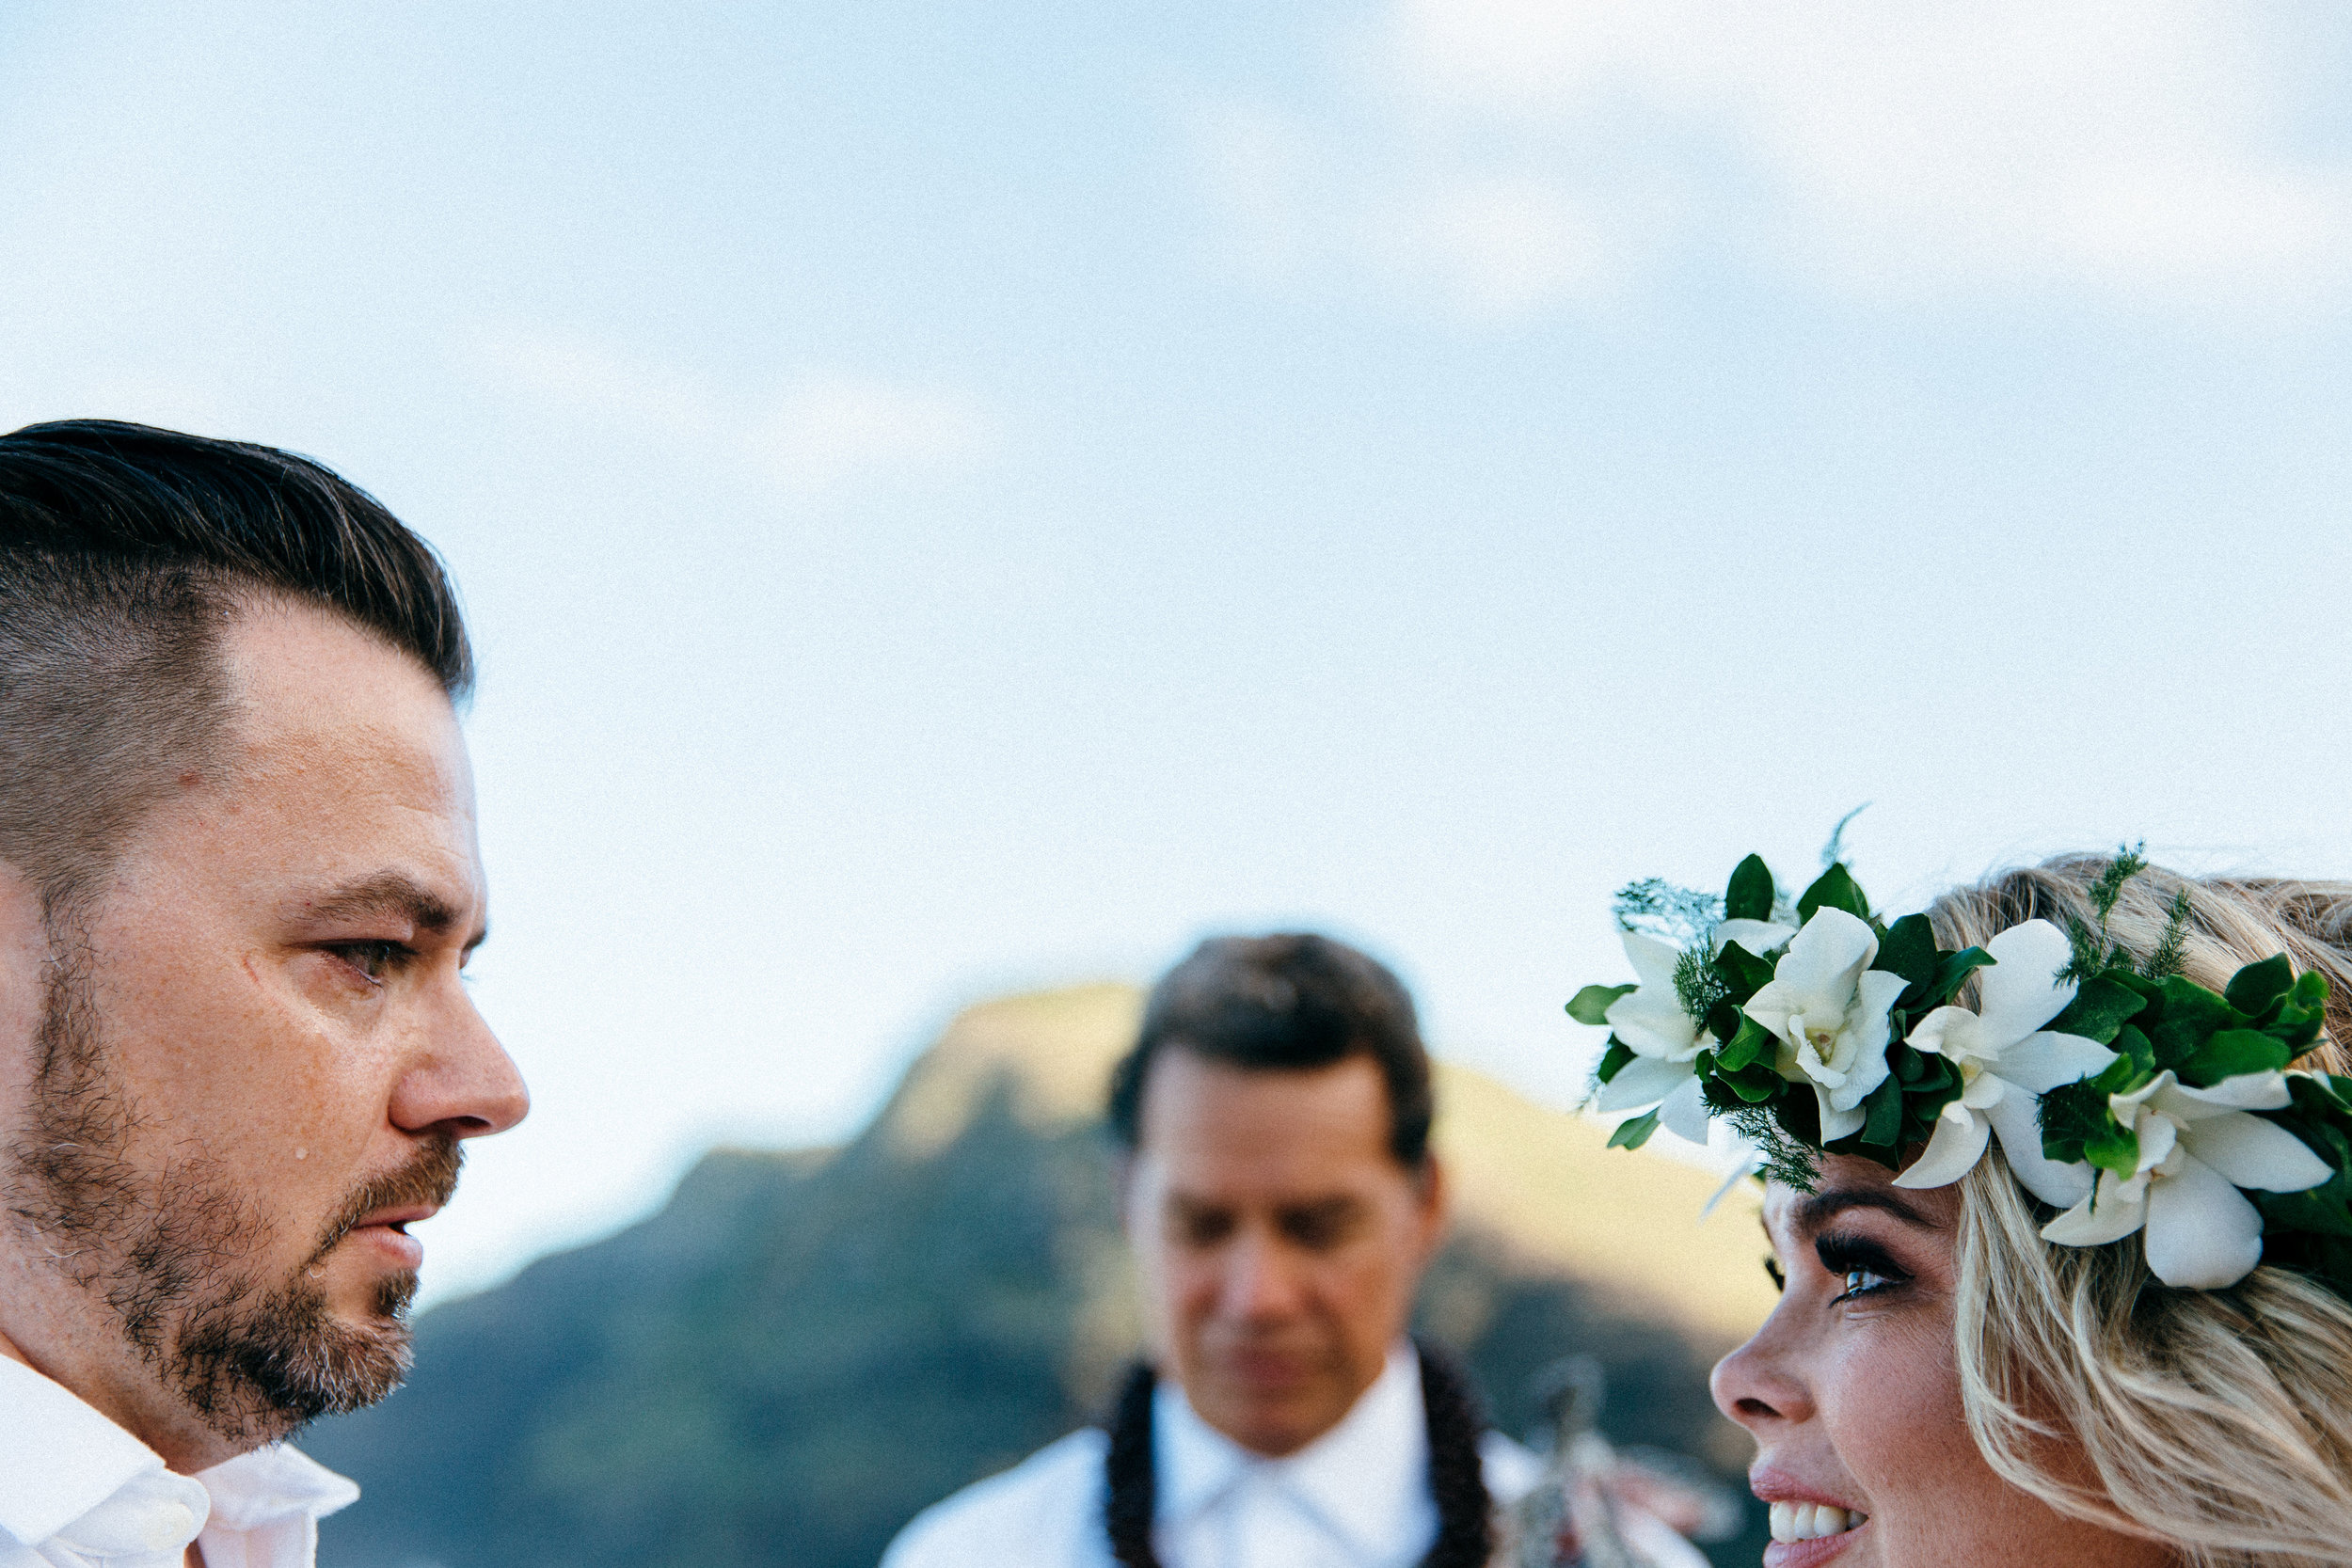 Megan & Travis - A small, intimate elopement at Makapuu Lighthouse